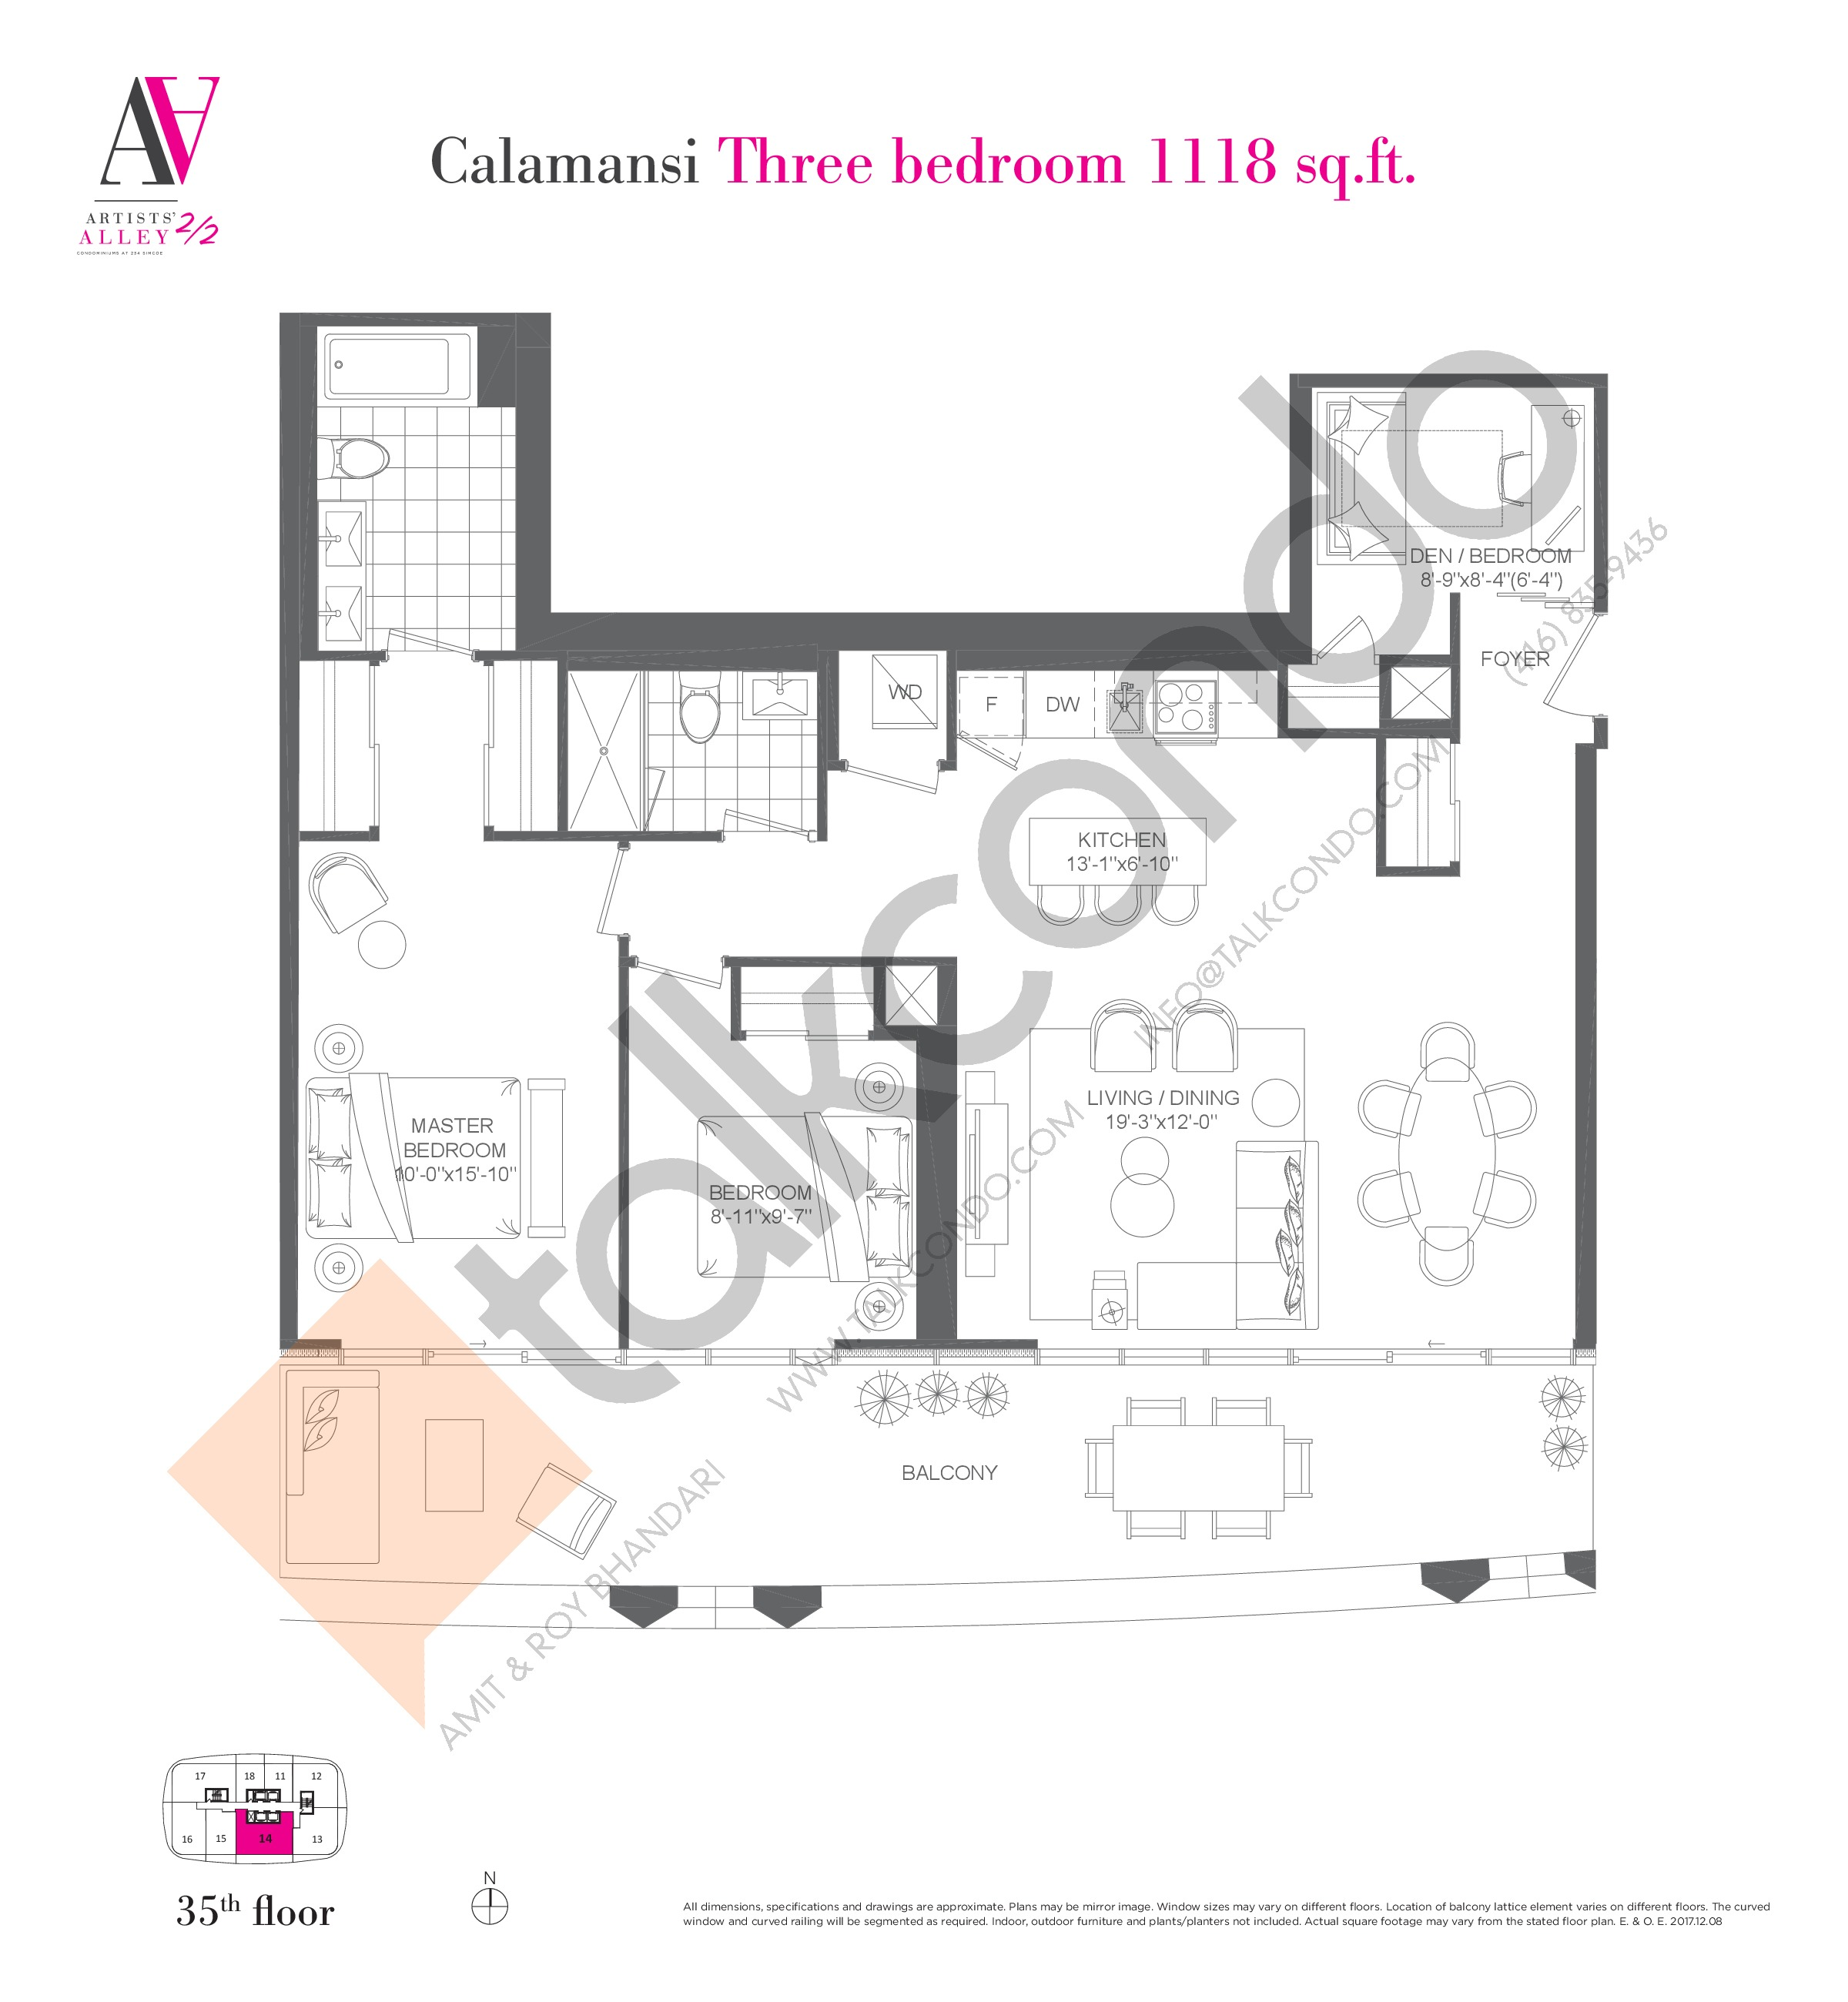 Calamansi Floor Plan at Artists' Alley 2 Condos - 1118 sq.ft